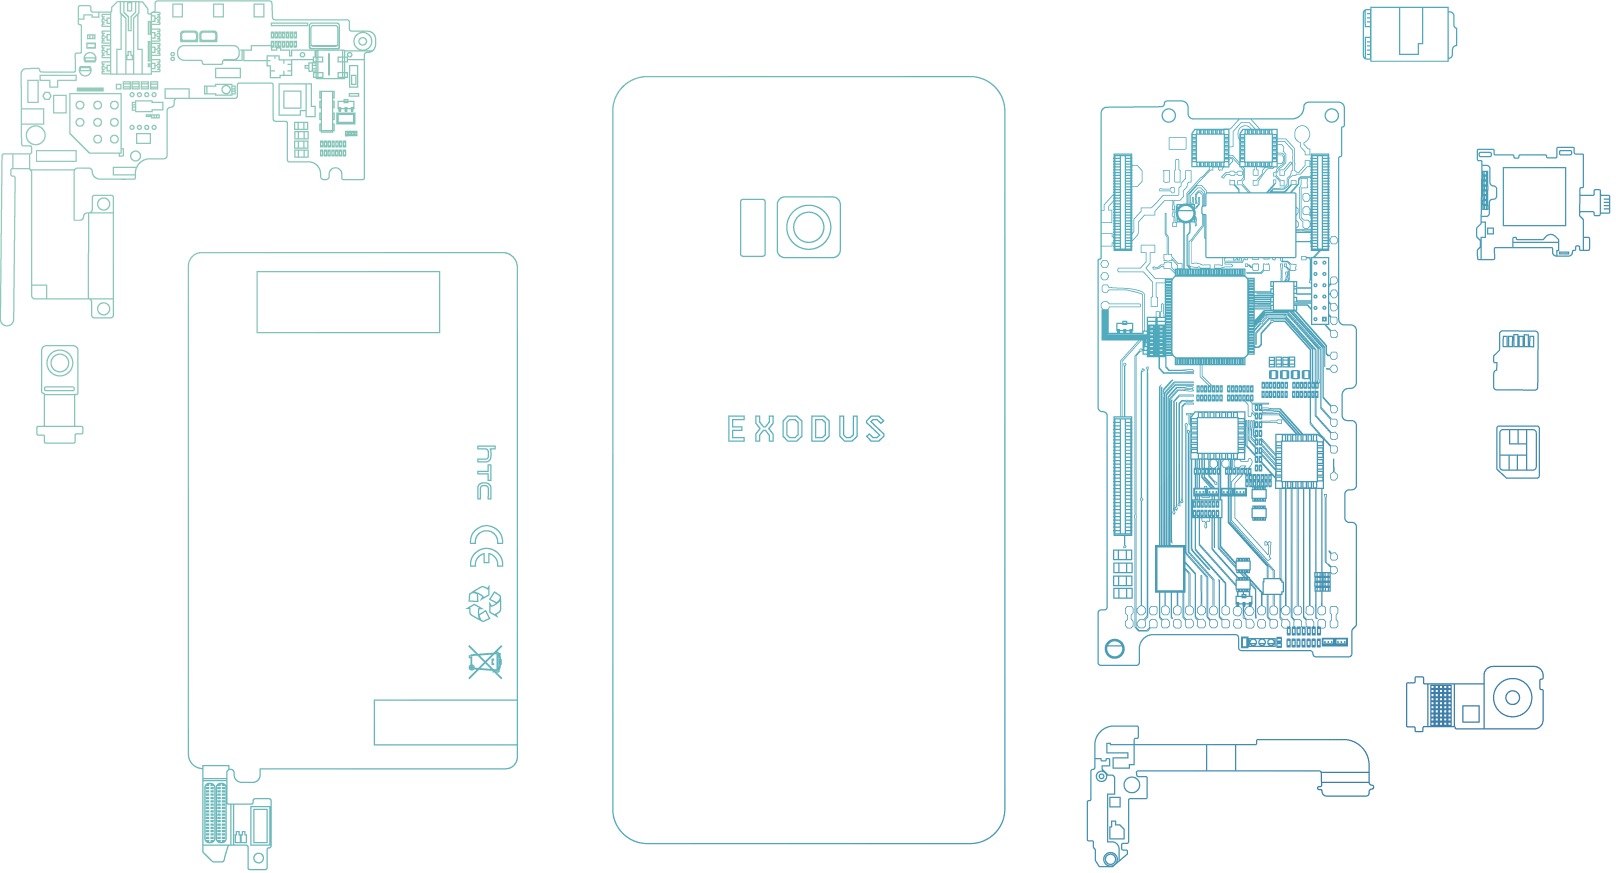 HTC One S, Blockchain, , HTC, Cryptocurrency, HTC, Smartphone, Decentralized application, Telephone, Business, htc exodus, product, product, design, technology, font, brand, pattern, diagram